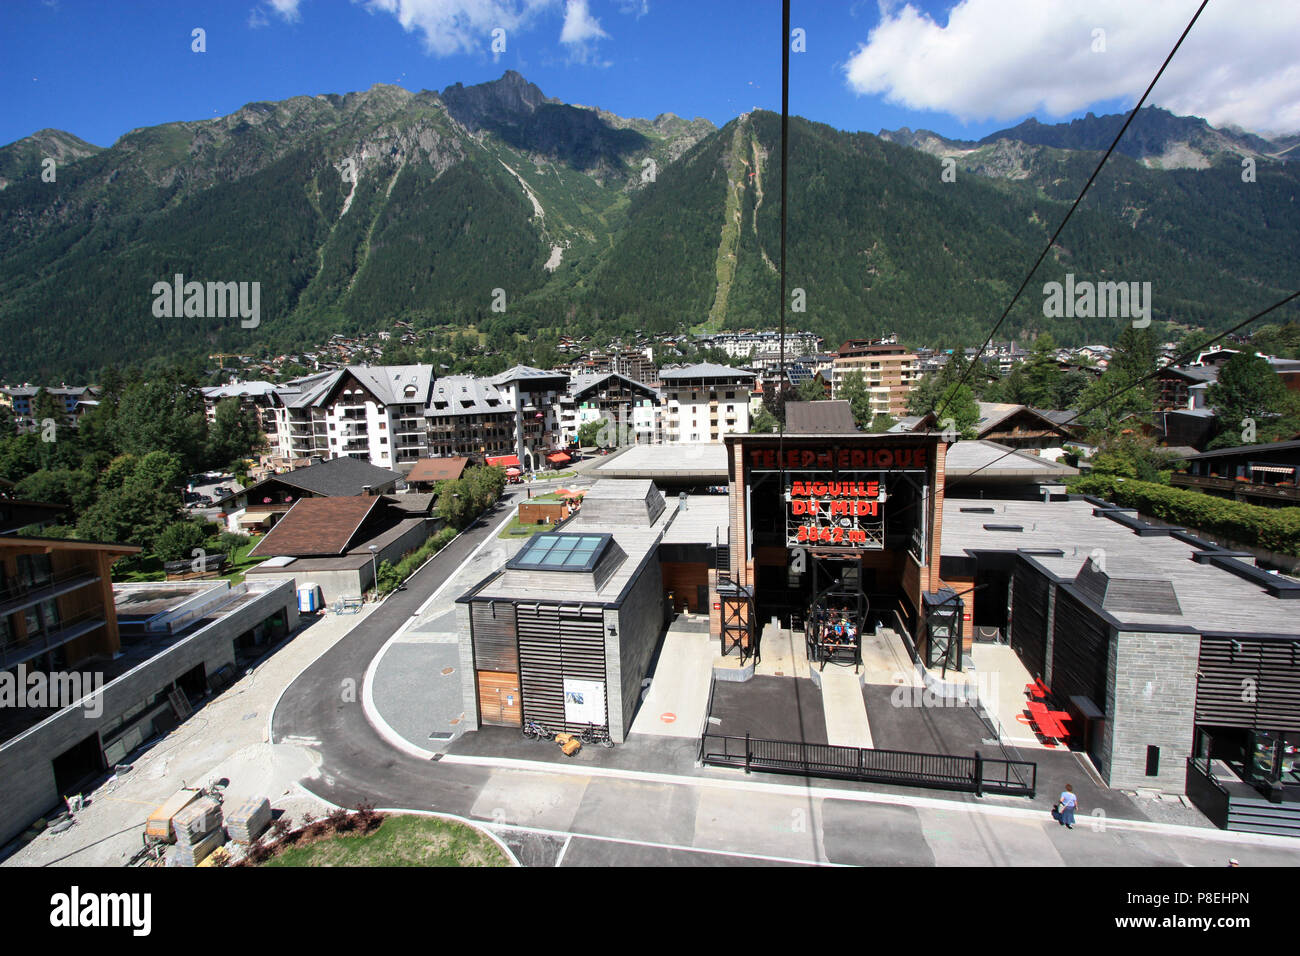 Valley station of the cable car heading for the peak of the Aiguille-du-Midi in the Mont Blanc massif, Chamonix, Haute Savoie, France - Stock Image